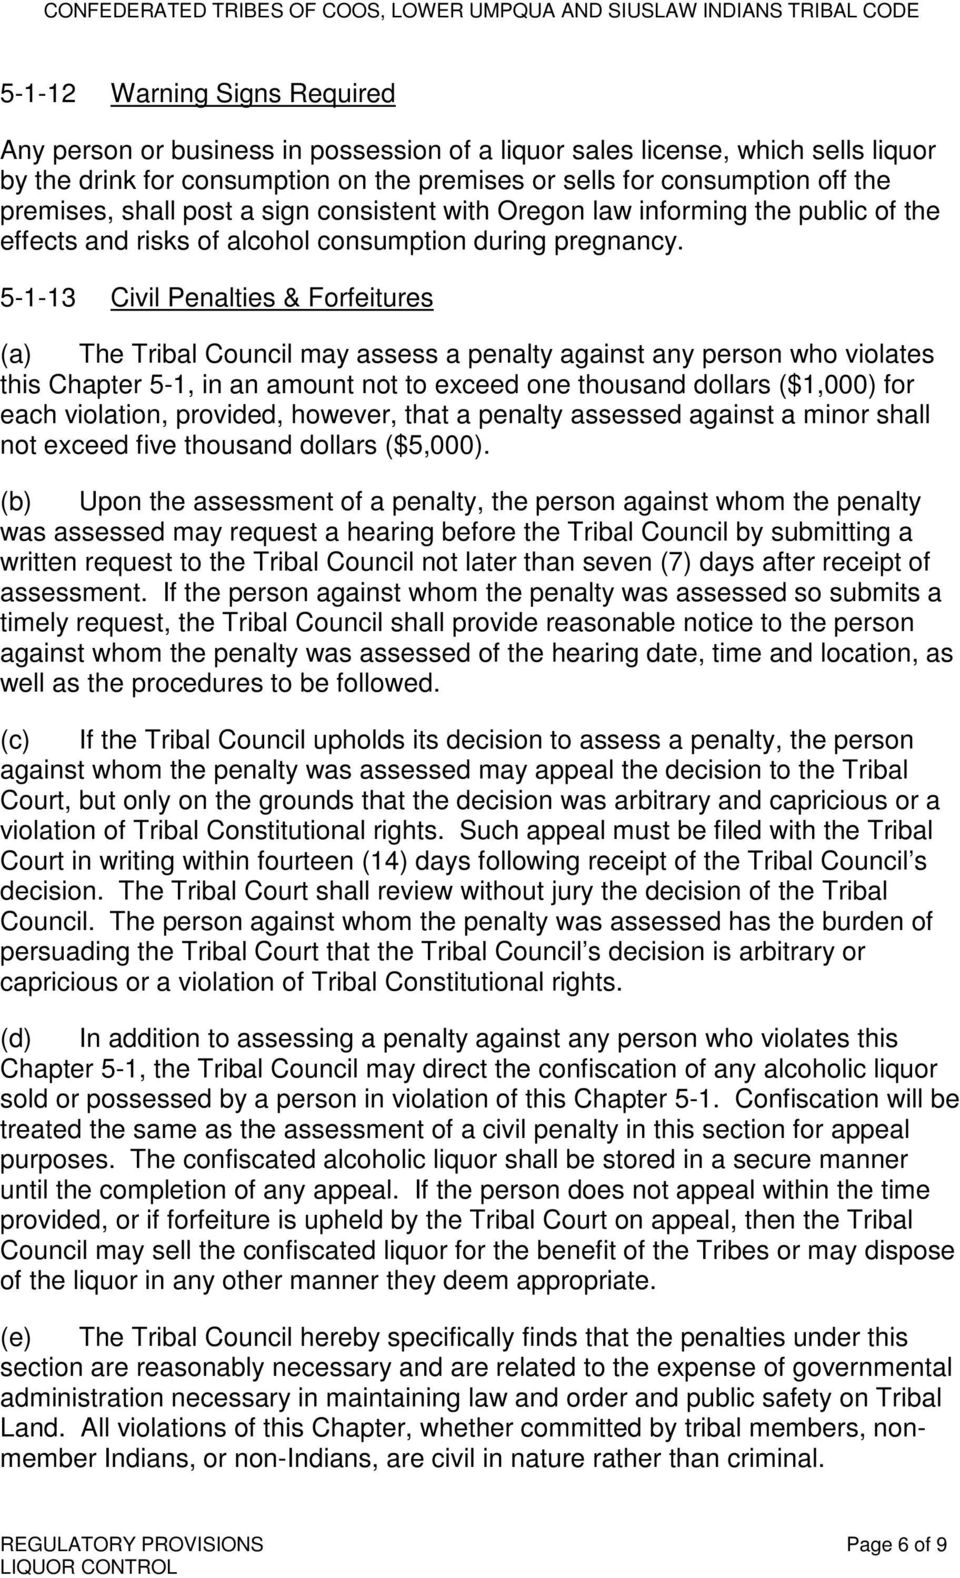 5-1-13 Civil Penalties & Forfeitures (a) The Tribal Council may assess a penalty against any person who violates this Chapter 5-1, in an amount not to exceed one thousand dollars ($1,000) for each